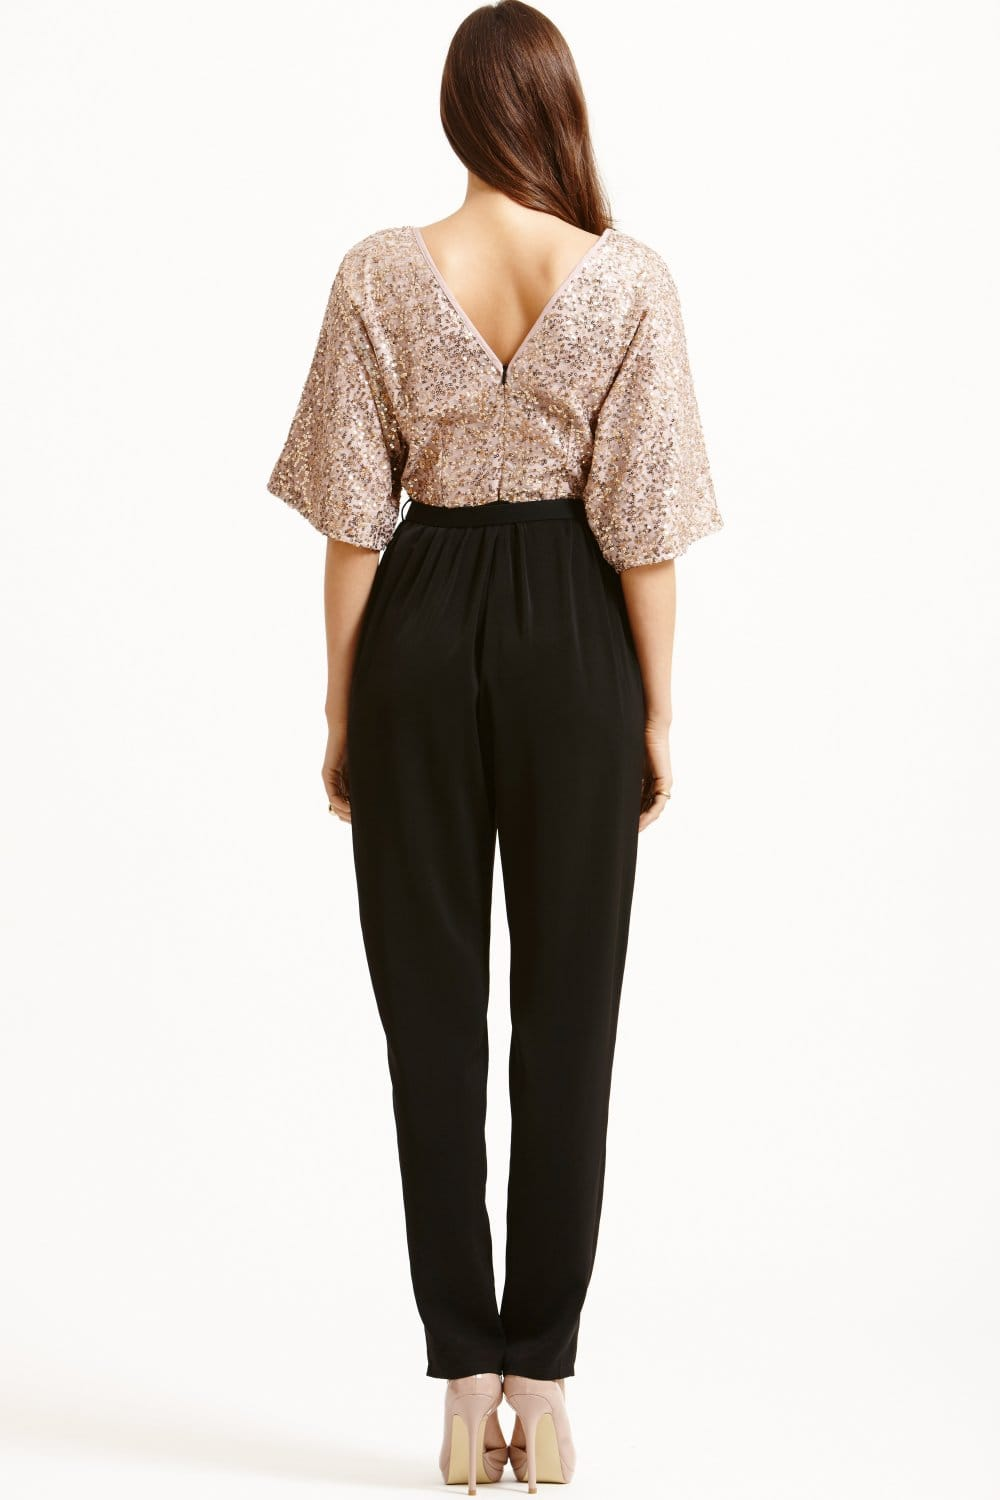 Gold and Black Sequined Jumpsuit - from Little Mistress UK